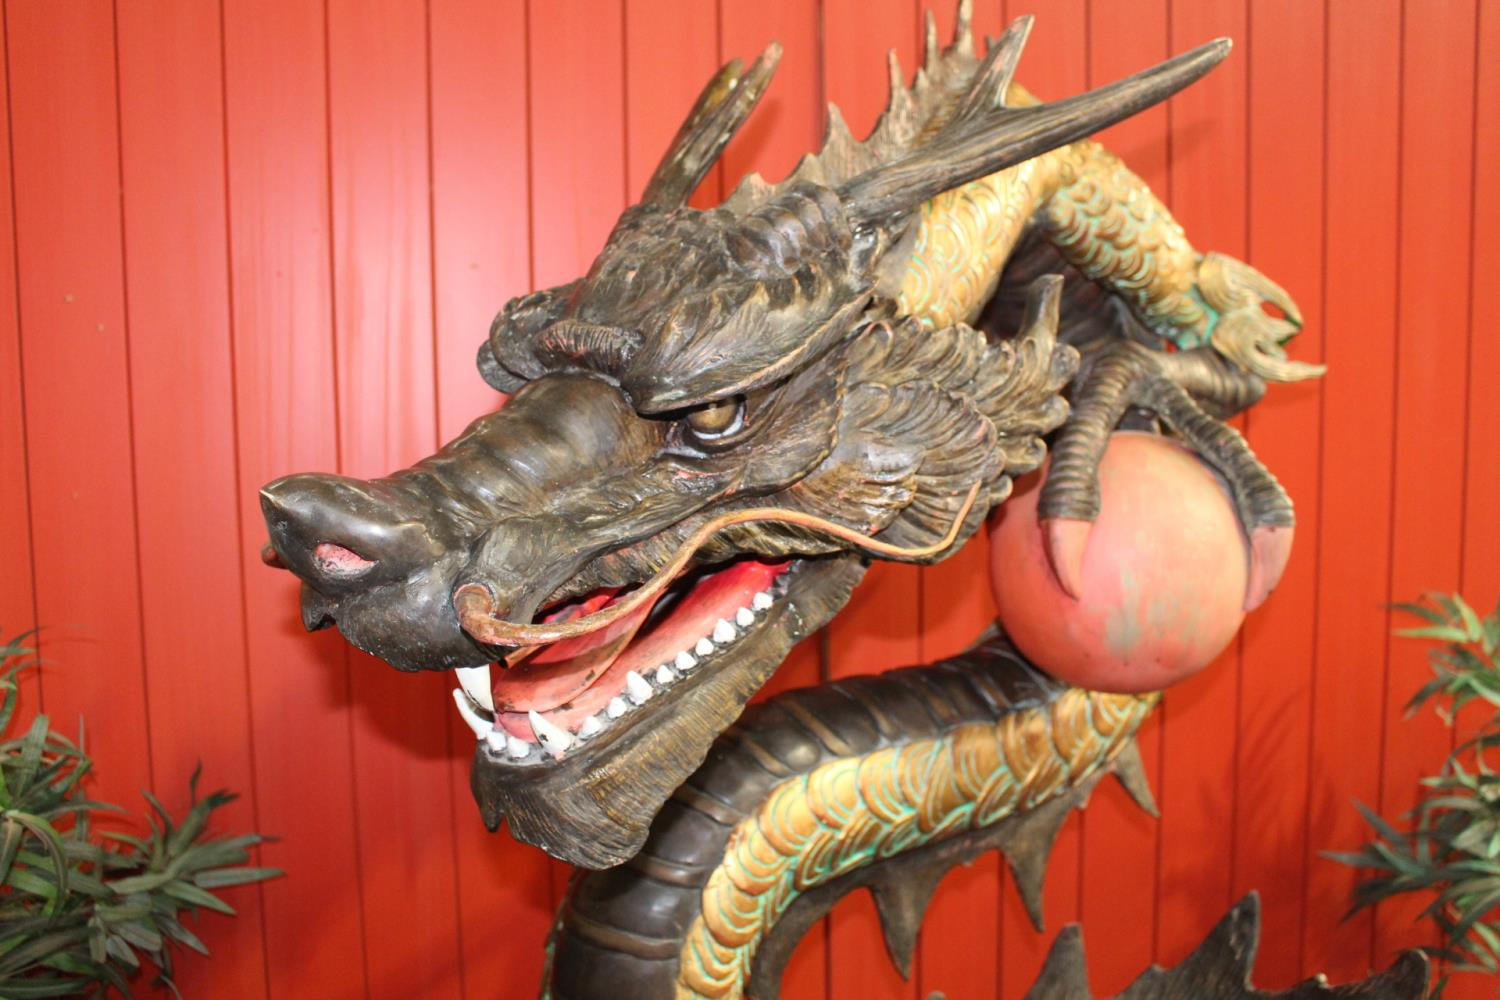 Model of a Dragon - Image 3 of 8